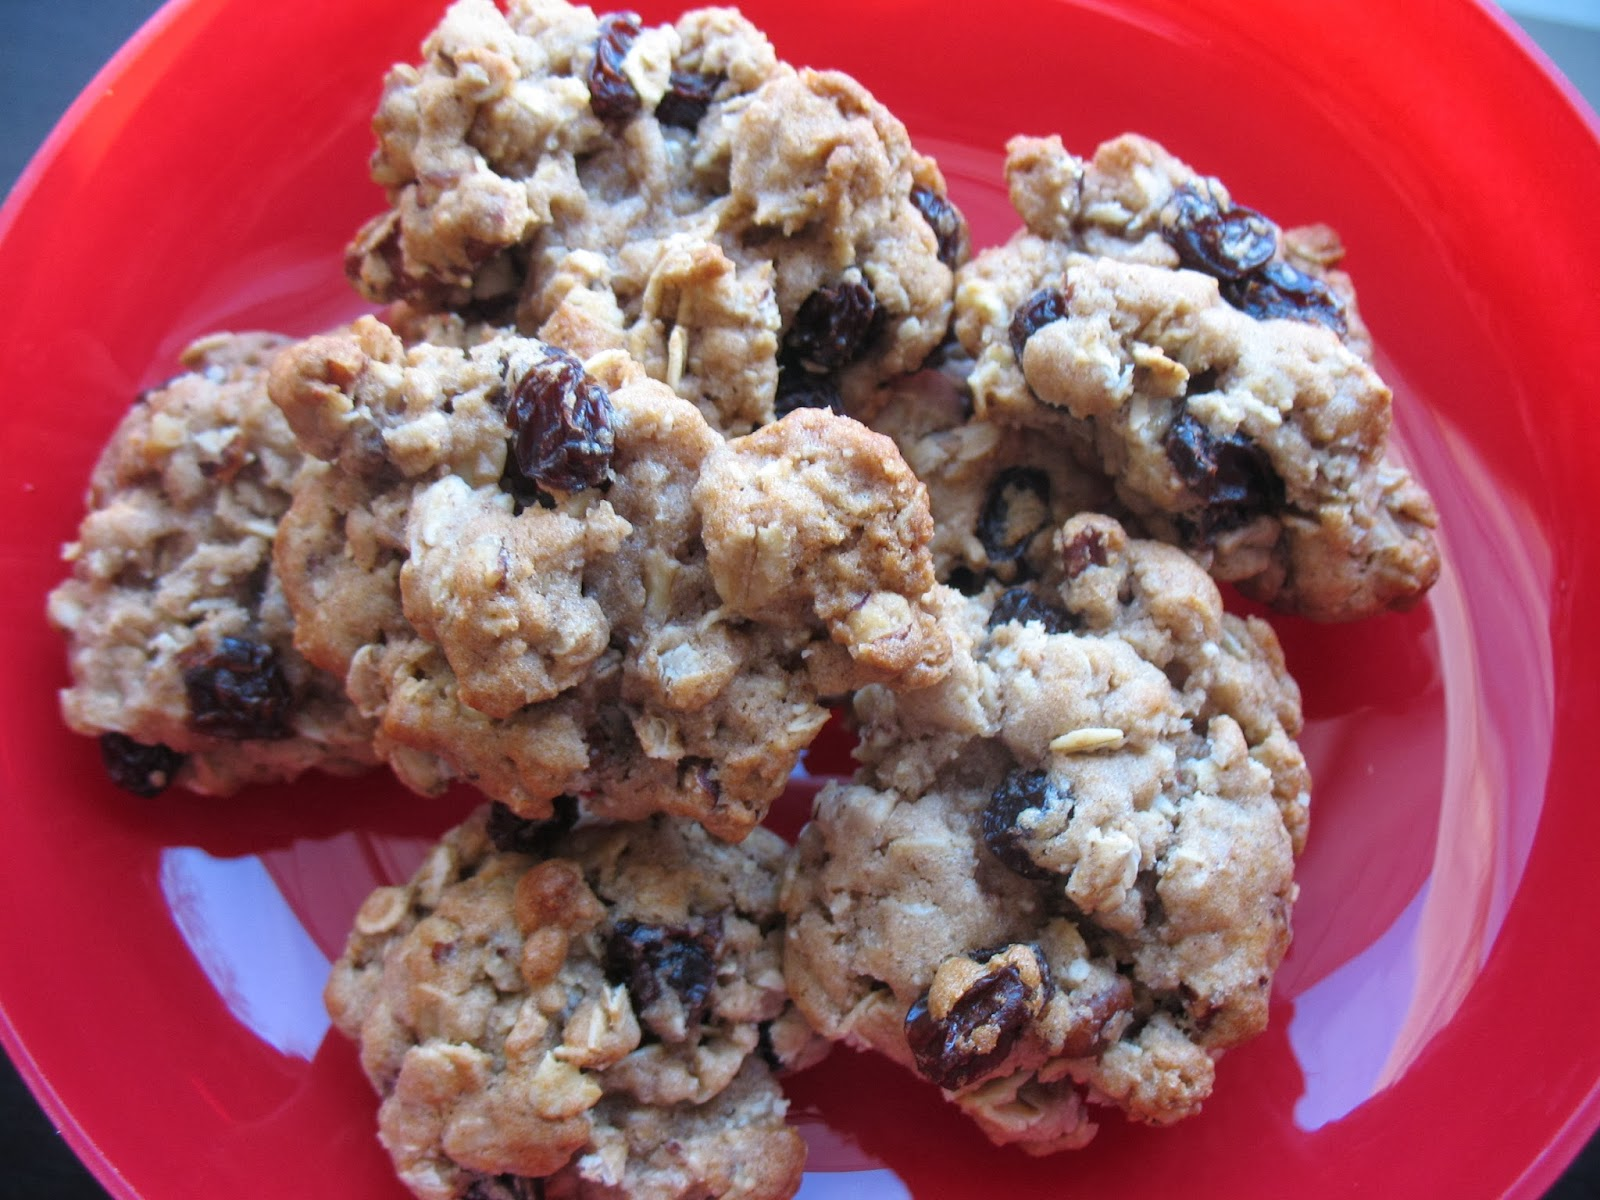 The Messy Apron: Rum Raisin Oatmeal Cookies